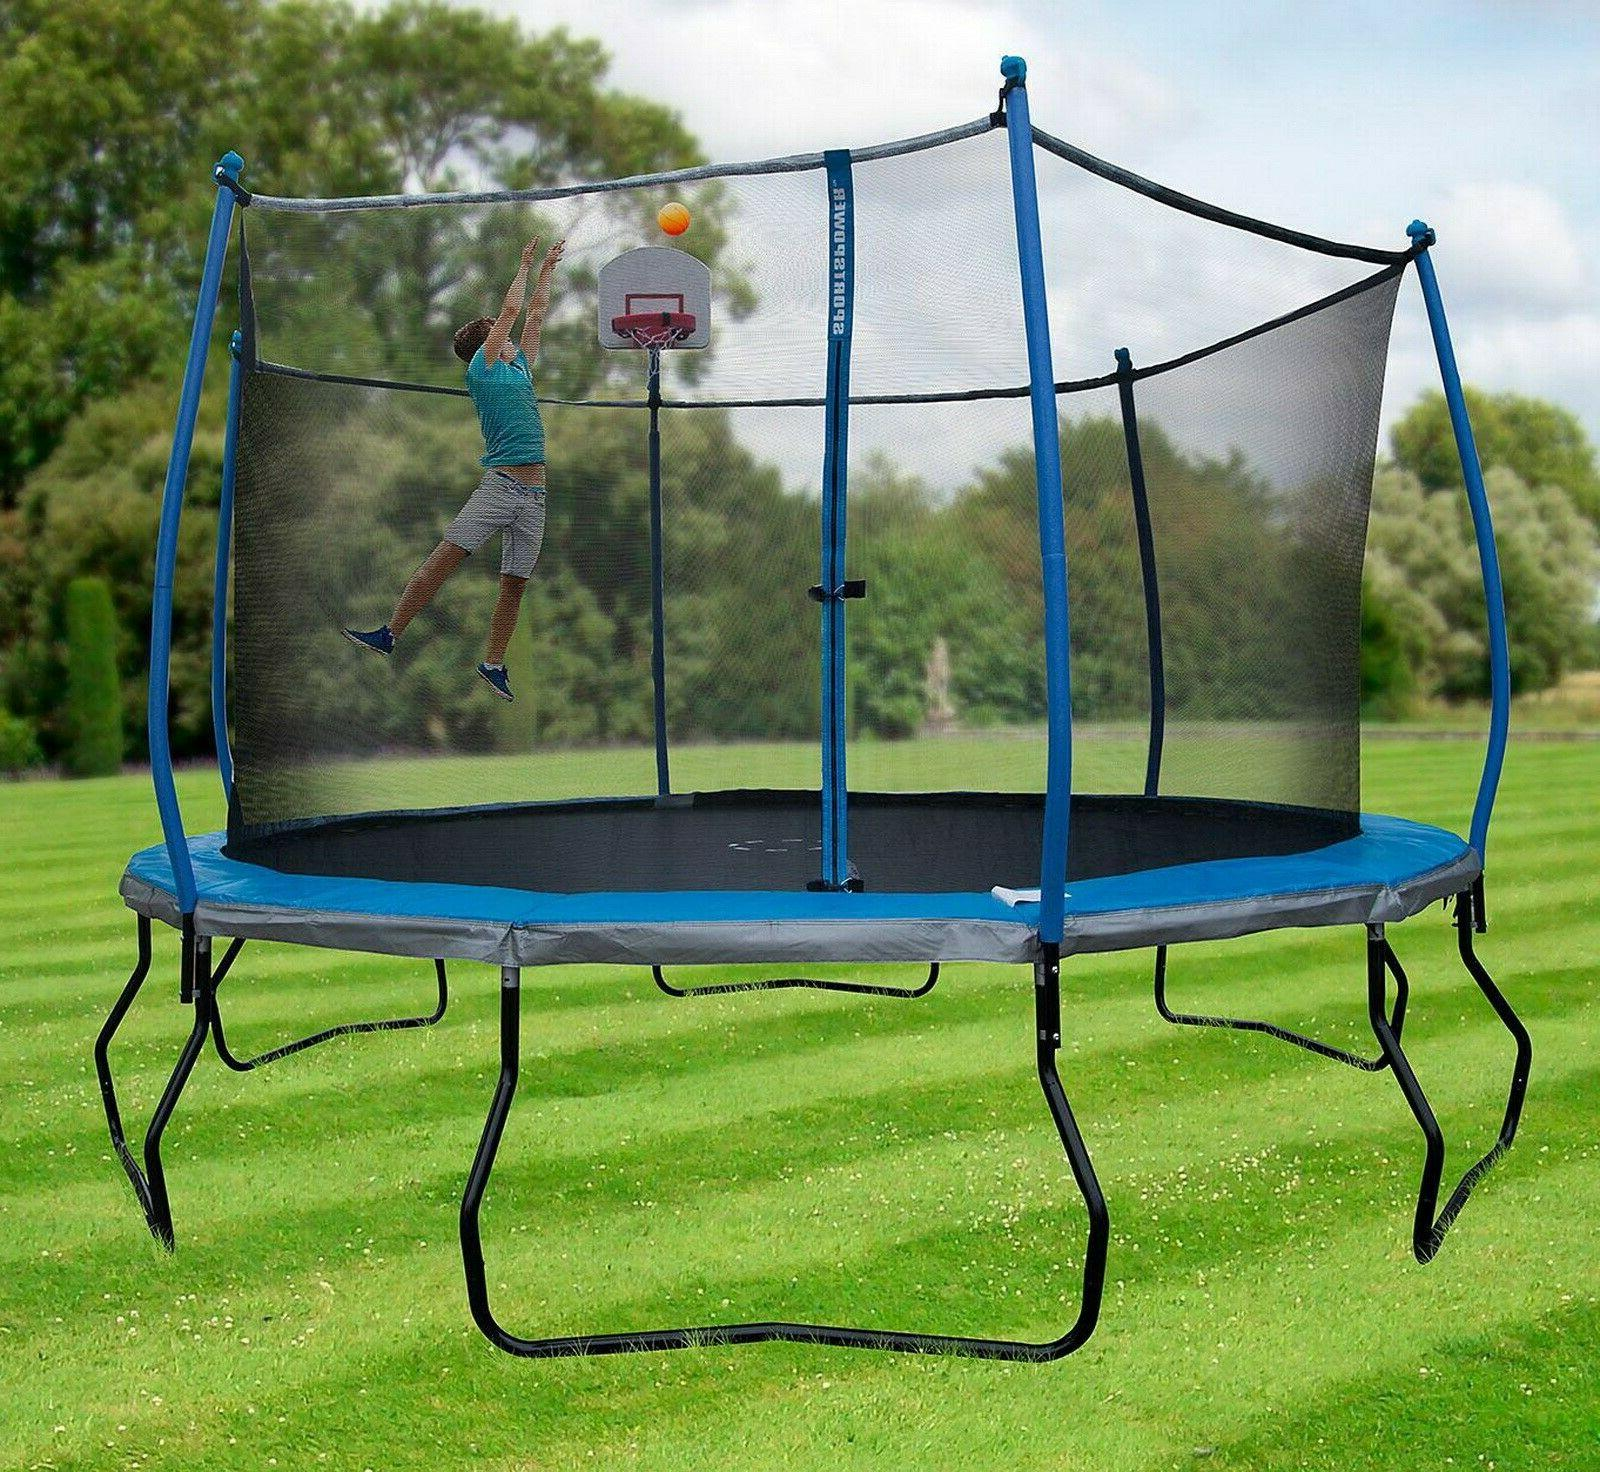 Round 14' with Basketball Goal Enclosure Pro